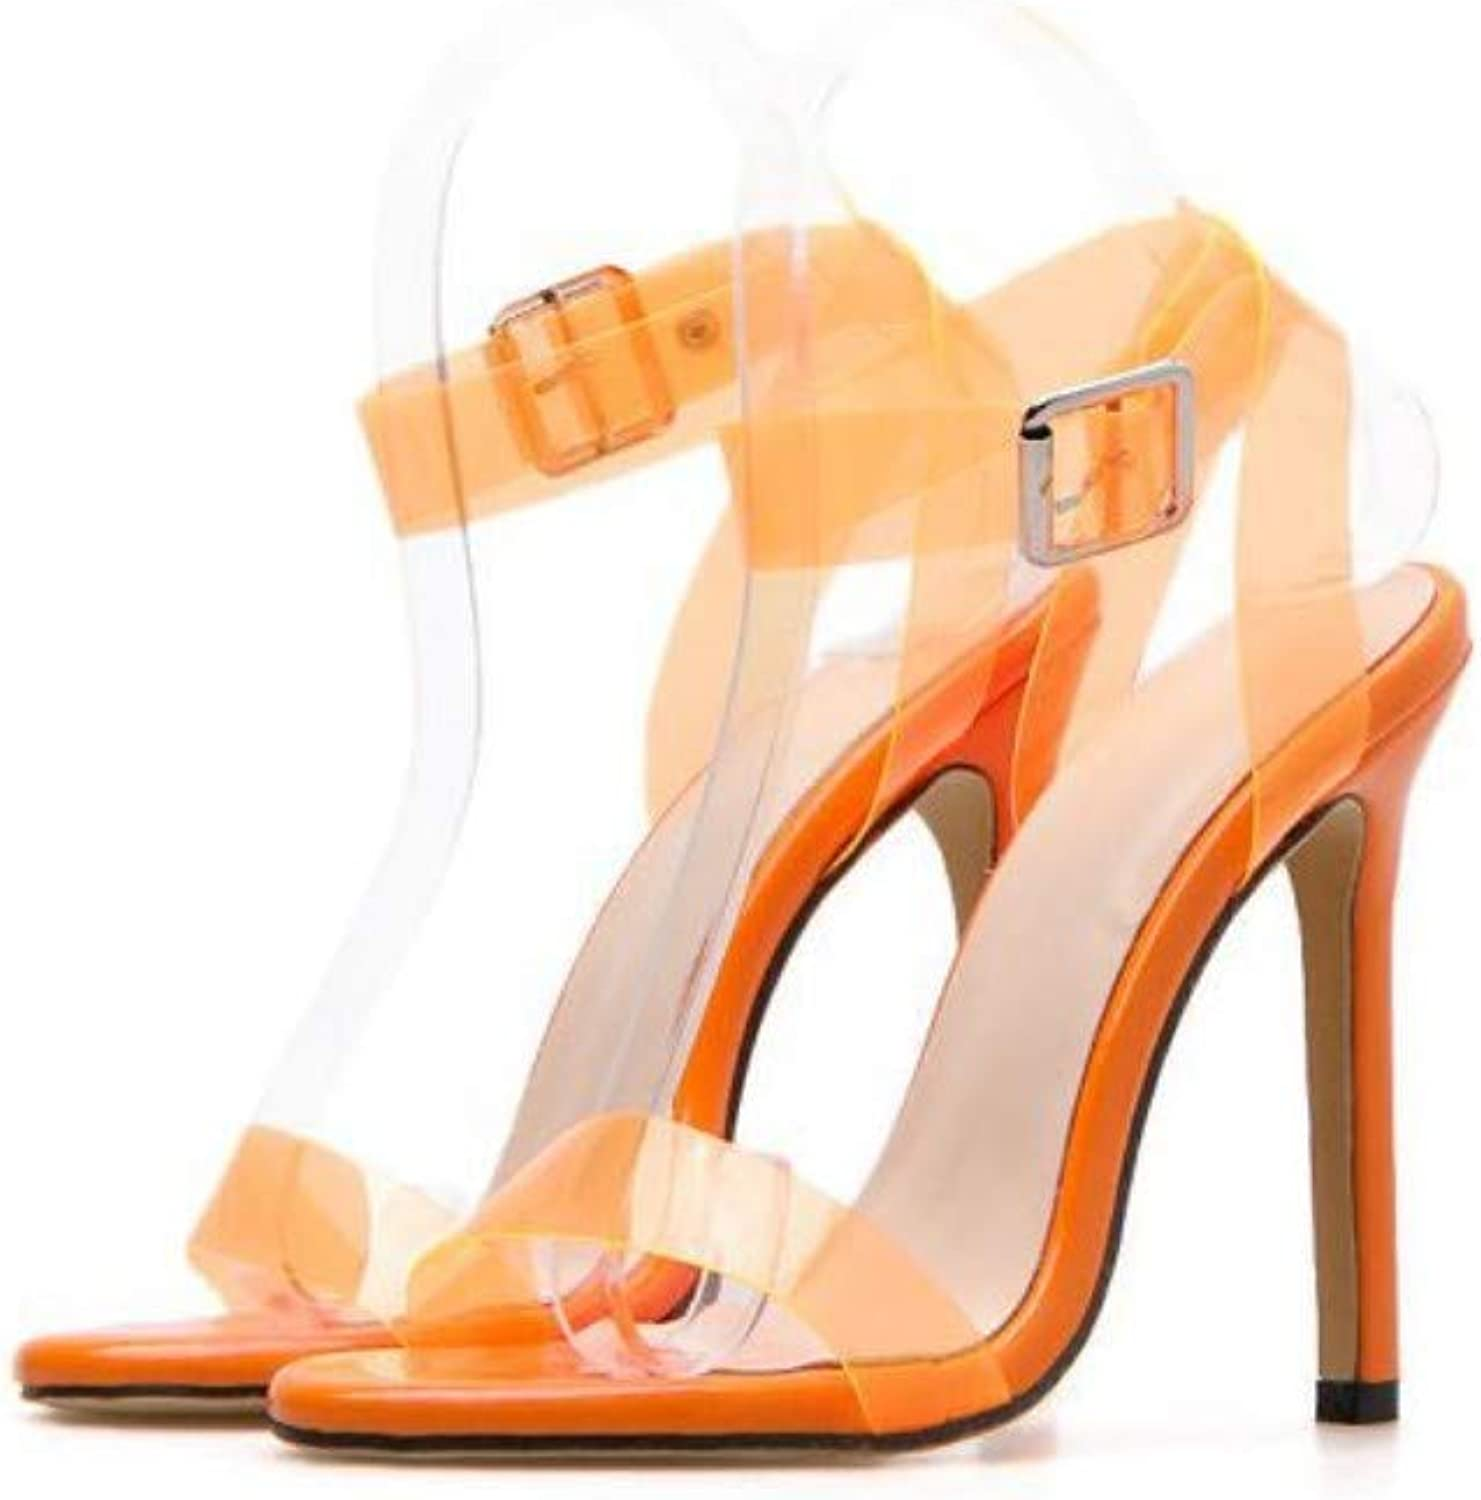 JQfashion Women's high-Heeled Pointed Slim-Heeled Sandals Candy-Coloured PVC Cross-Sexy Roman shoes